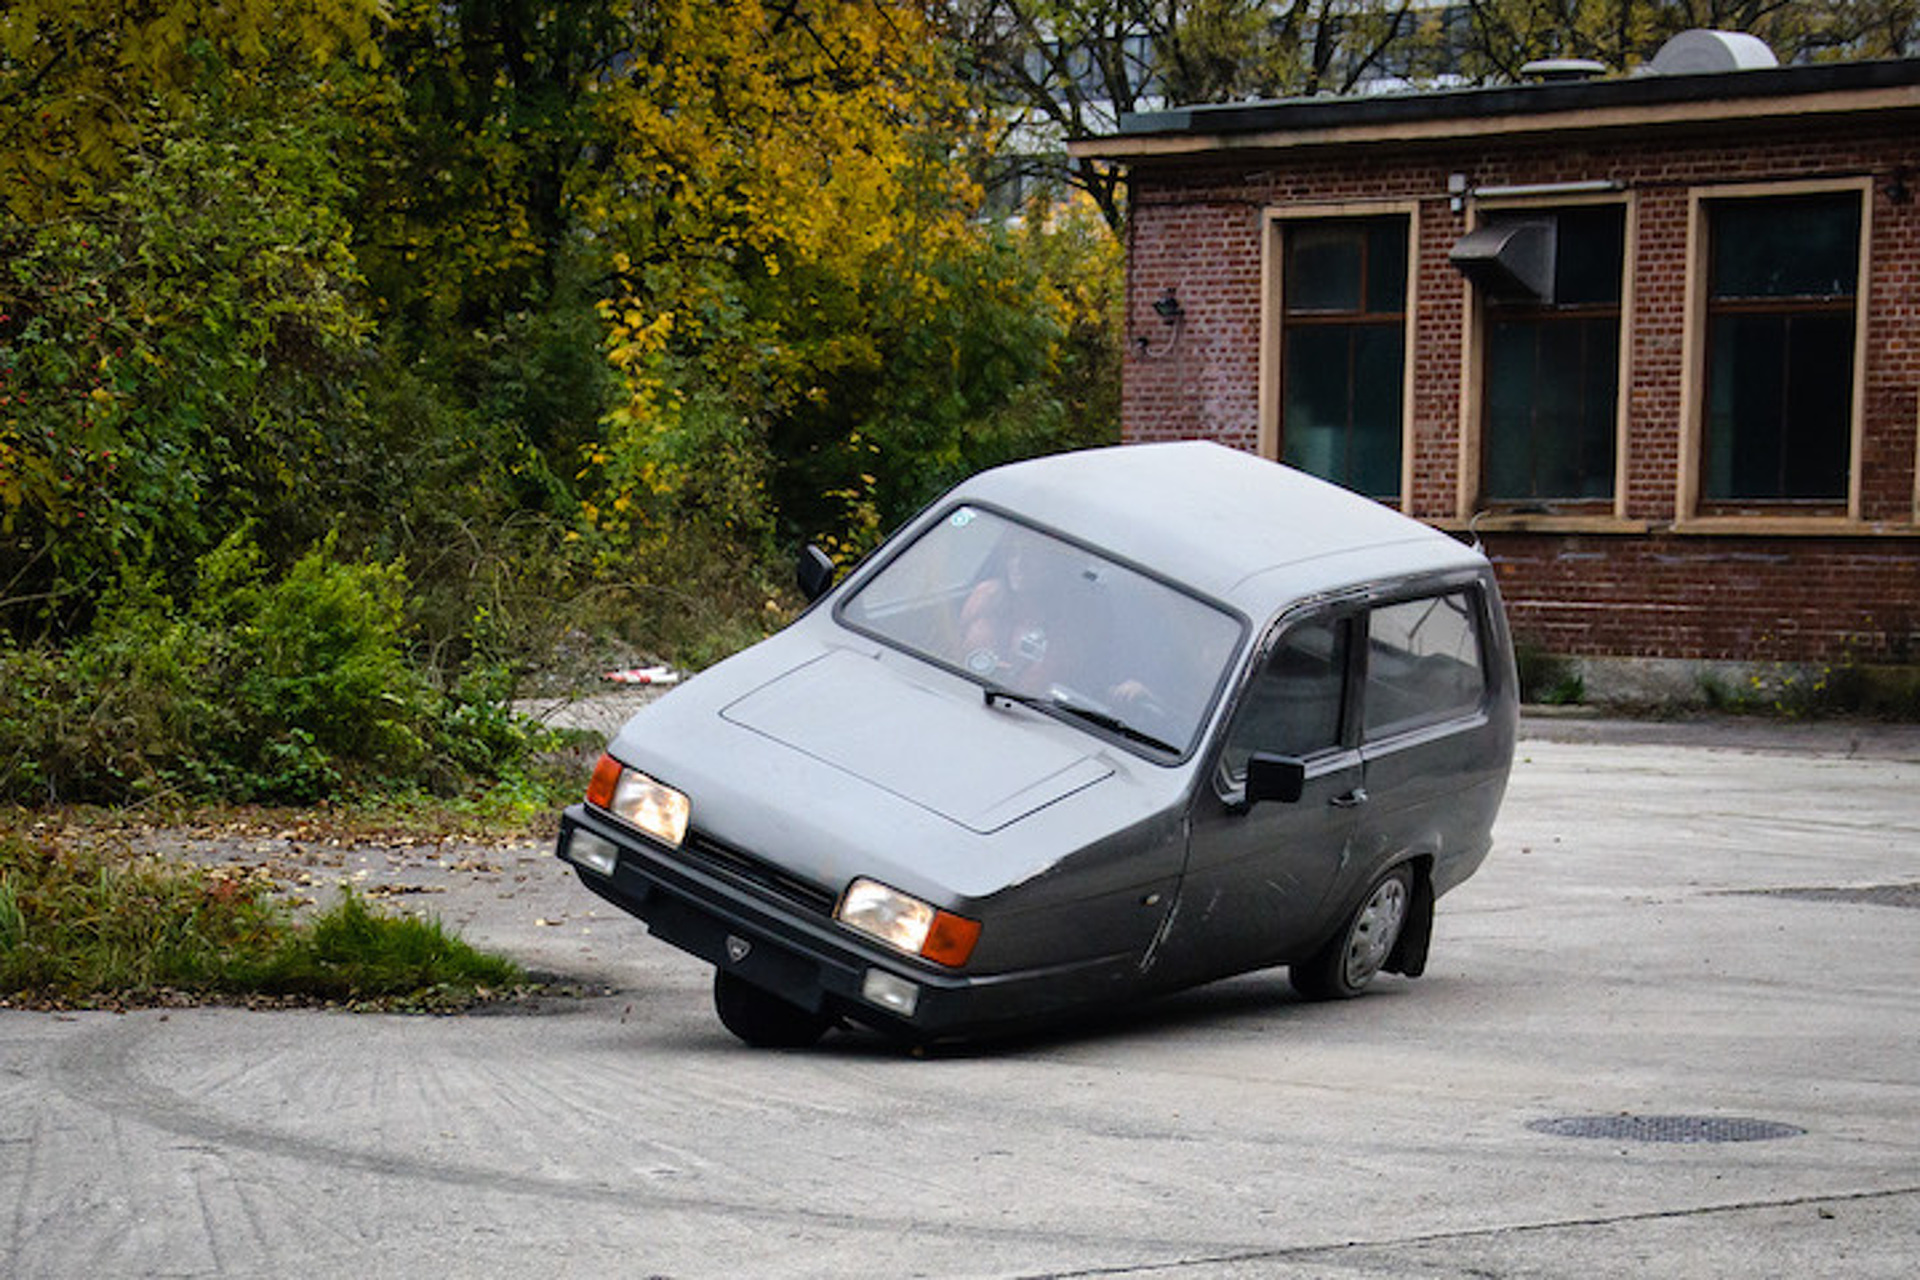 13 Cars that Will Scare the Crap Out of You This Halloween